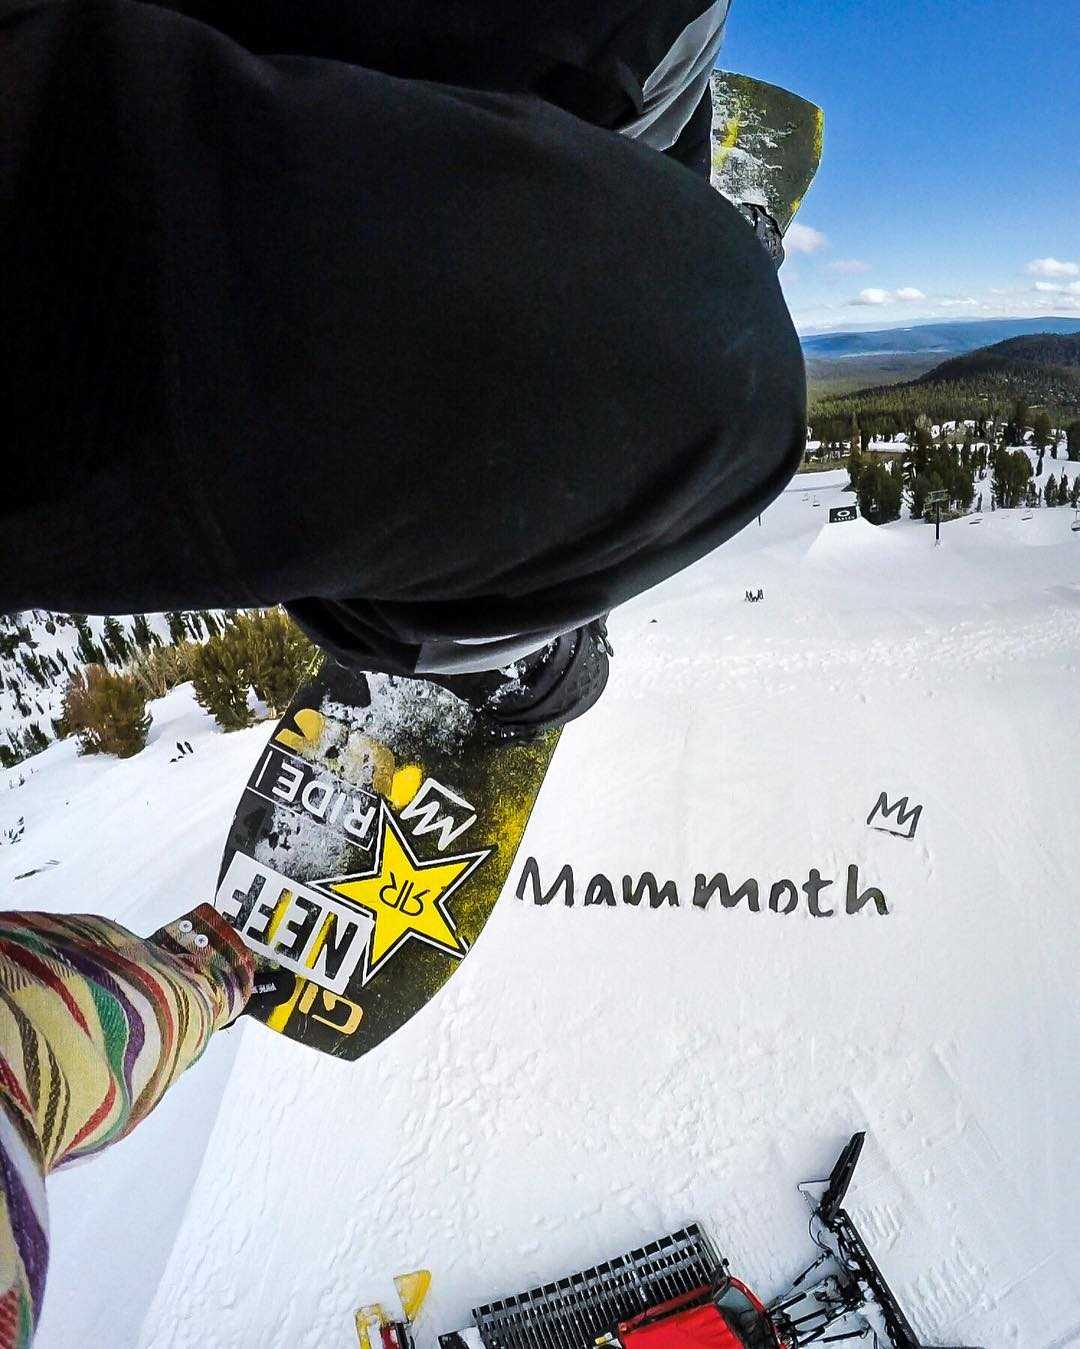 @brandonjdavis goes huge with a backside 540 tail grab over the snowcat at #SuperPark20. GoPro HERO4 | GoPole Chomps #gopro #gopole #gopolechomps #snowboarding @mammothunbound @themayhemprojects